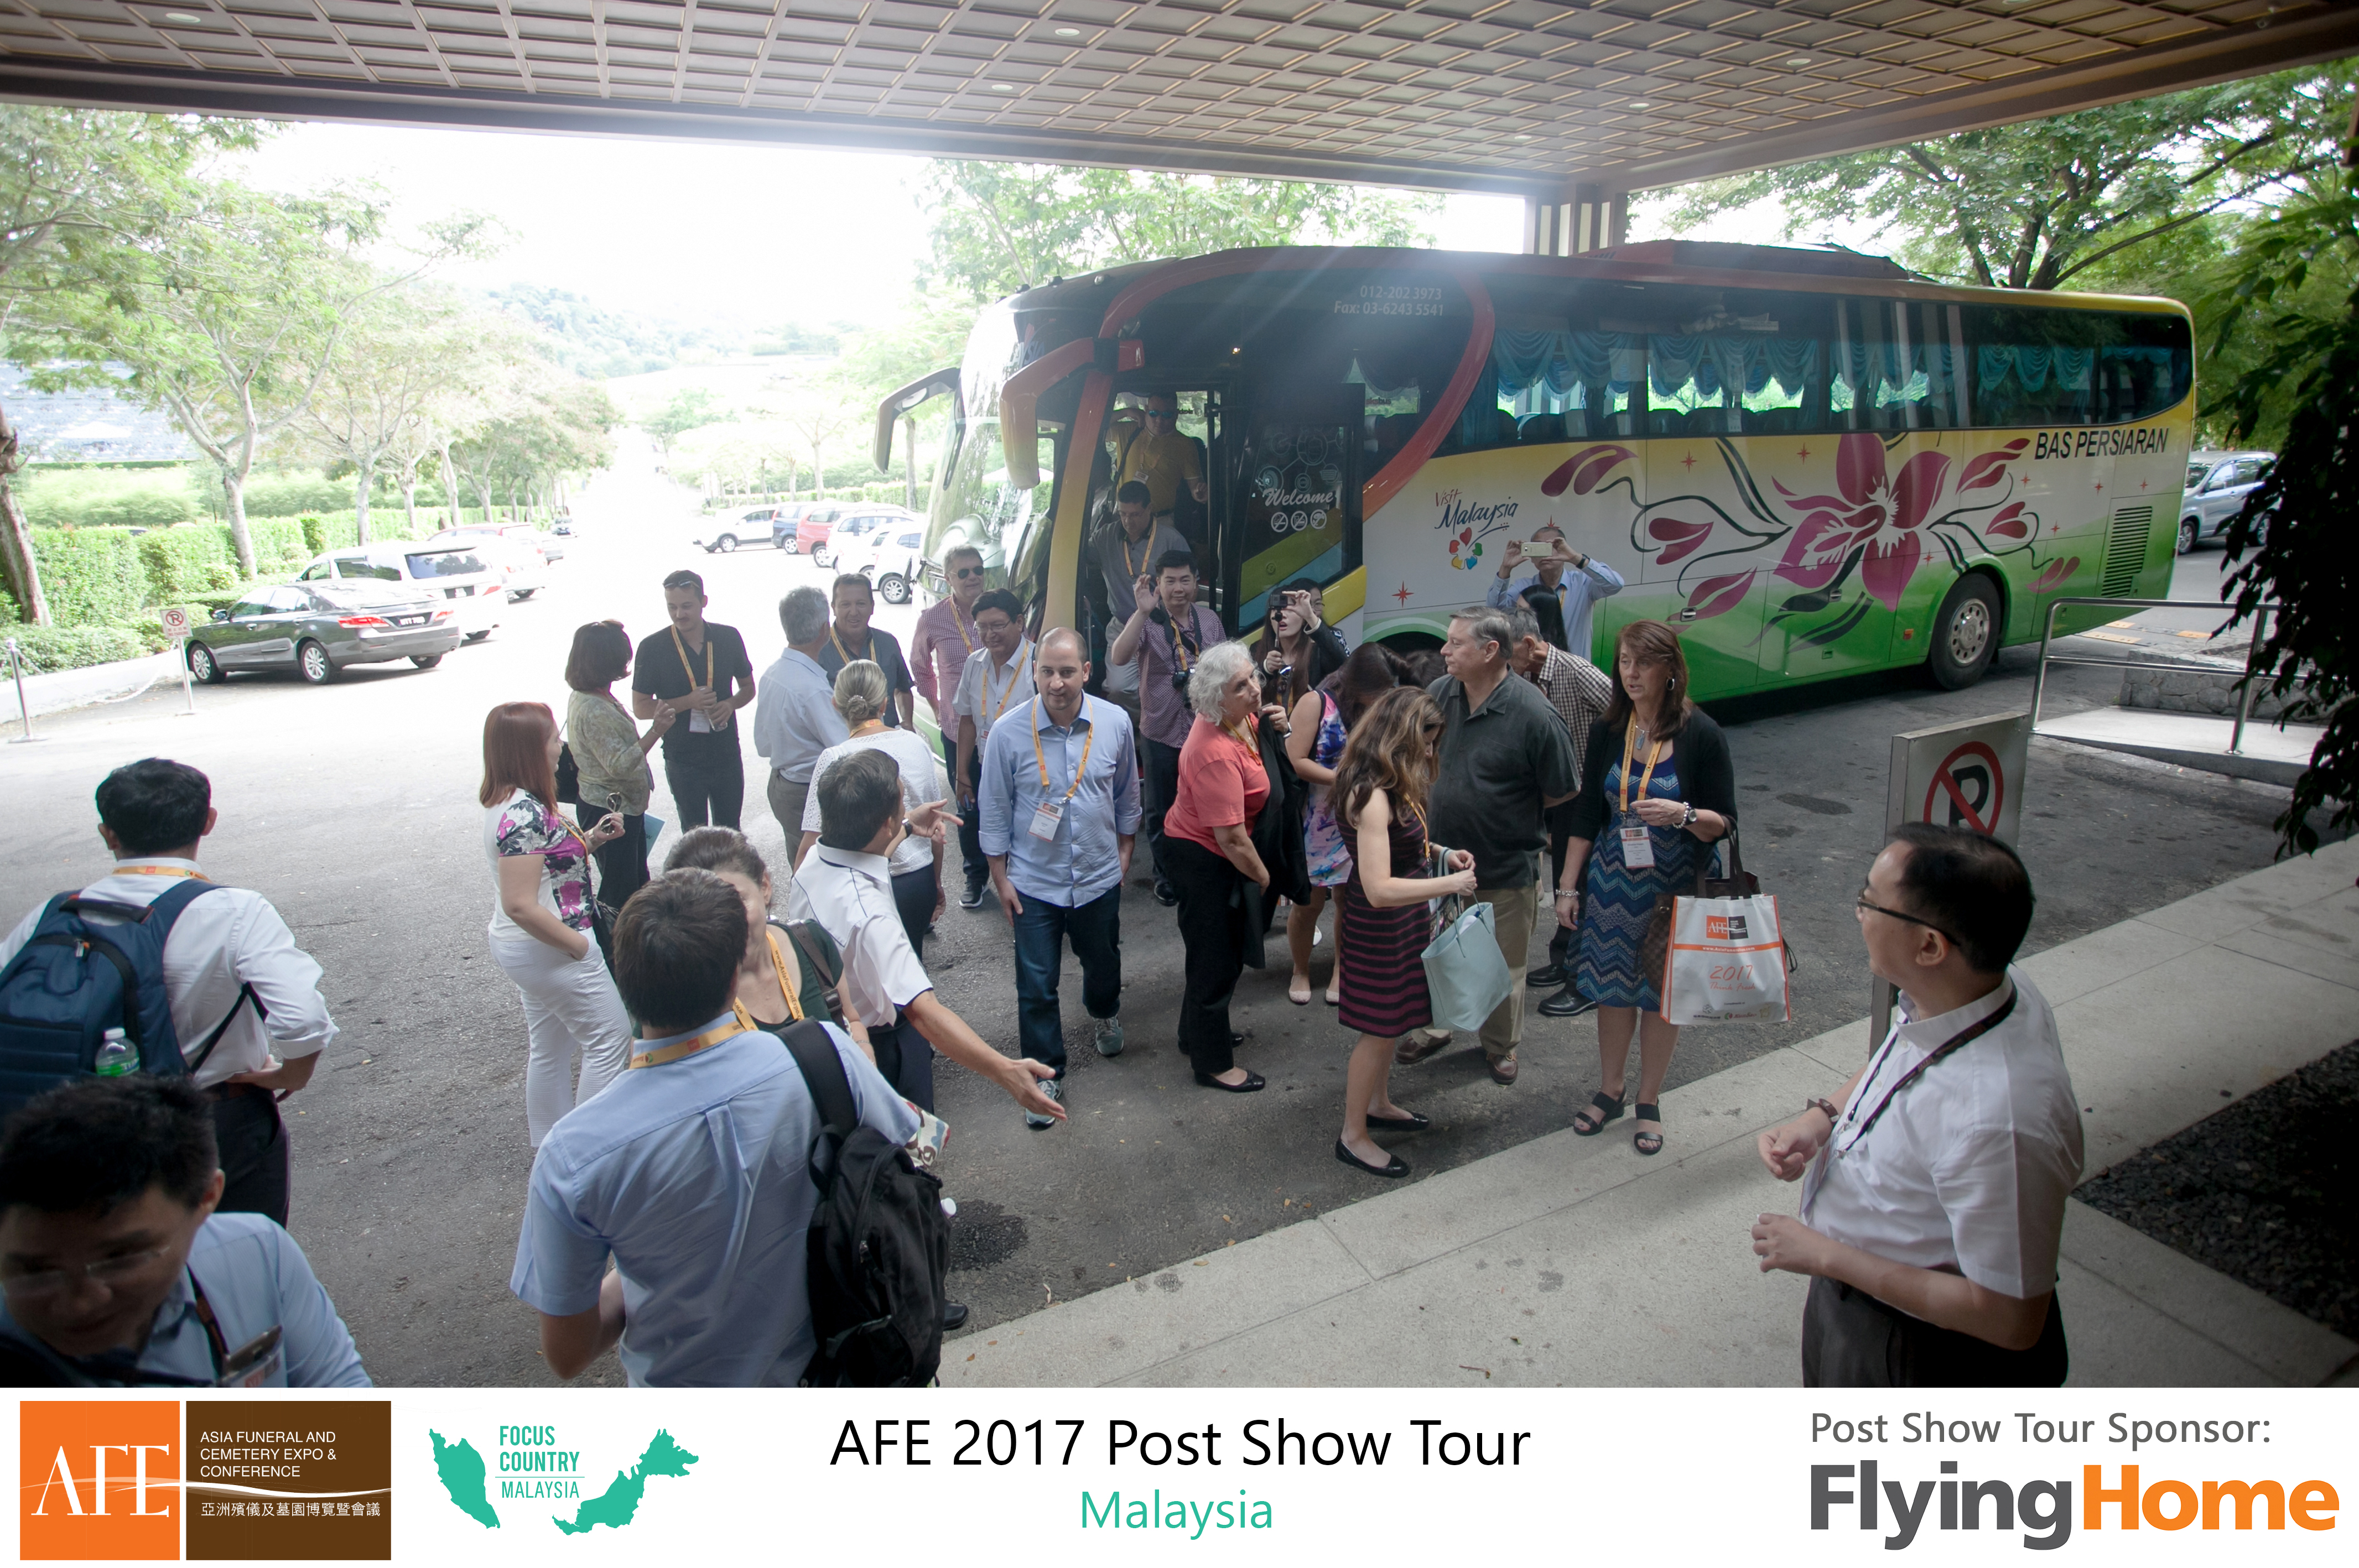 AFE Post Show Tour 2017 Day 2 - 43